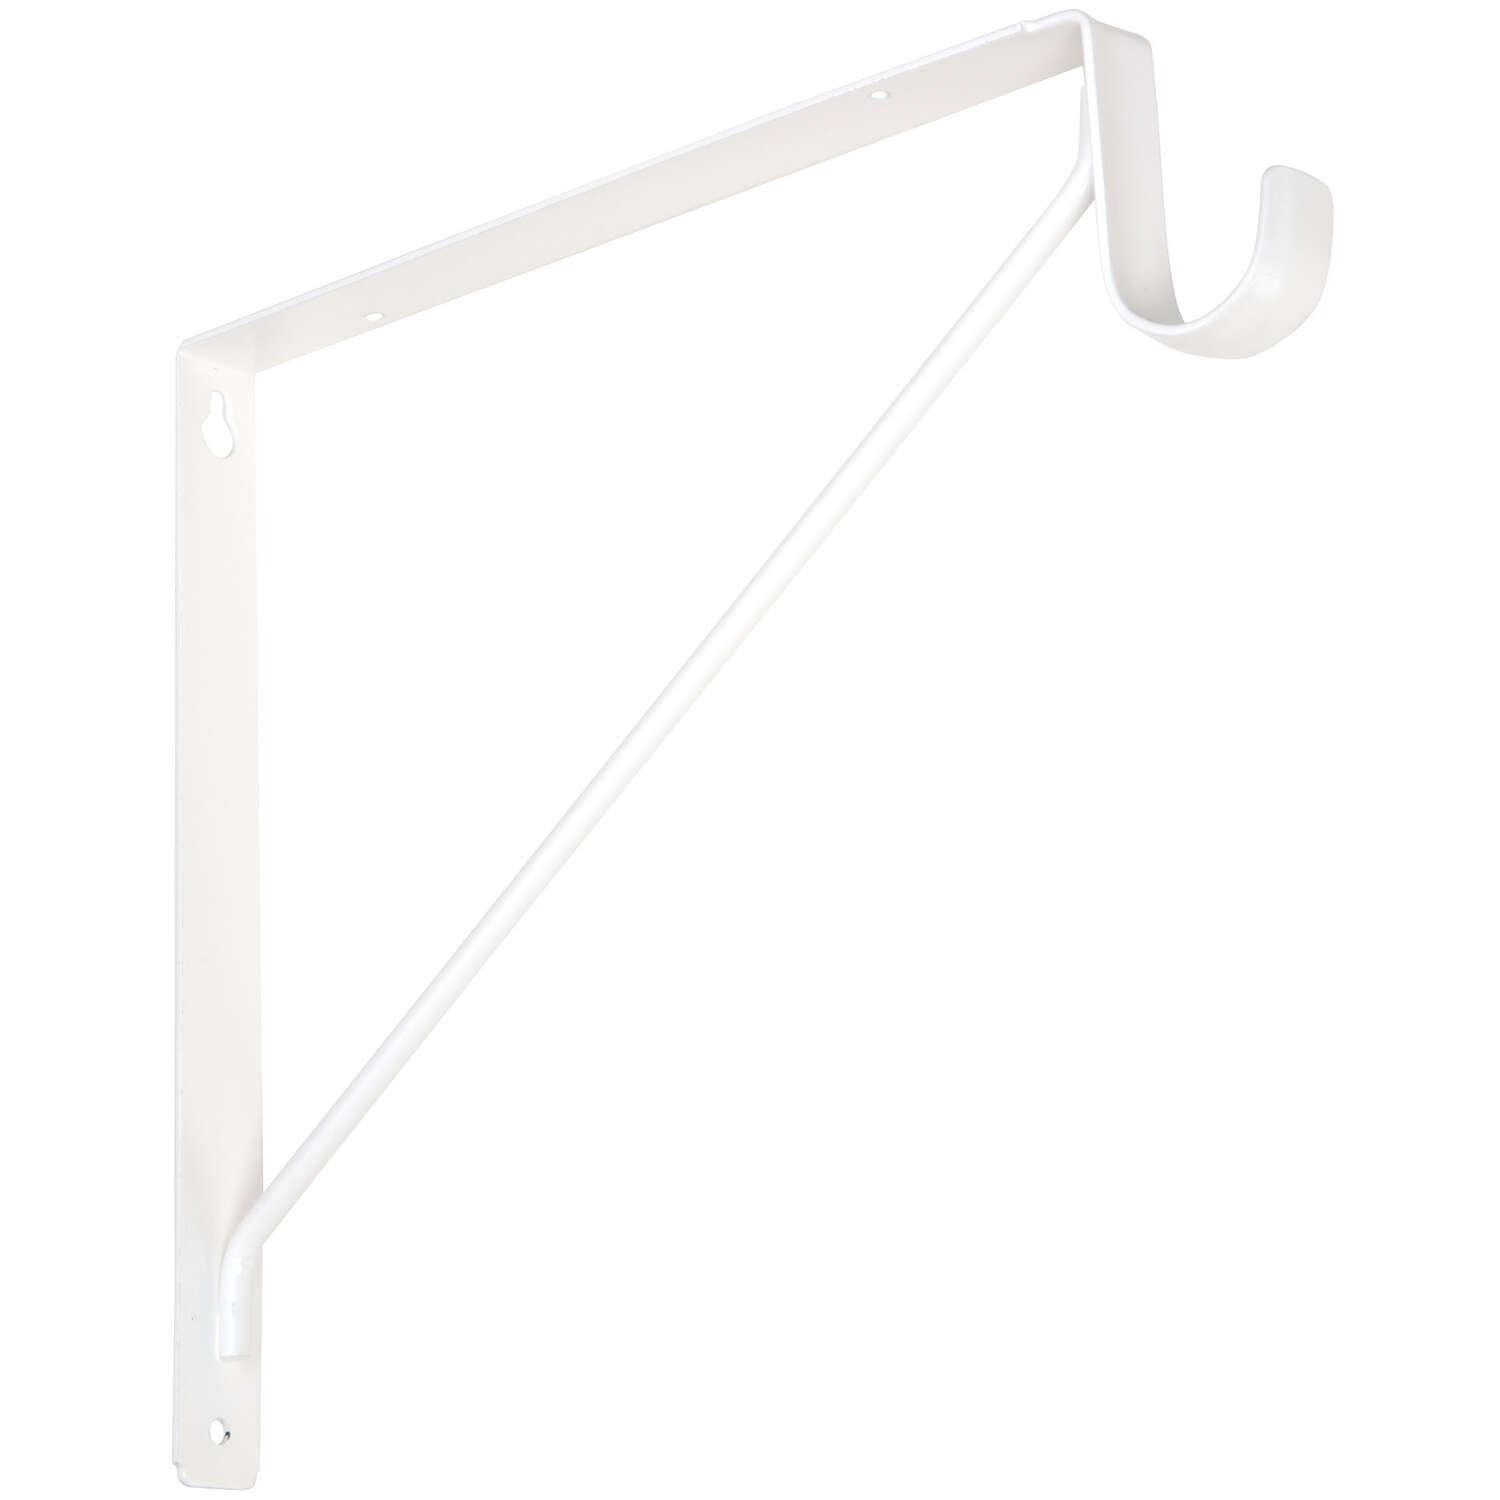 National Hardware White Steel Shelf/Rod Bracket 12.45 in. L 125 lb.